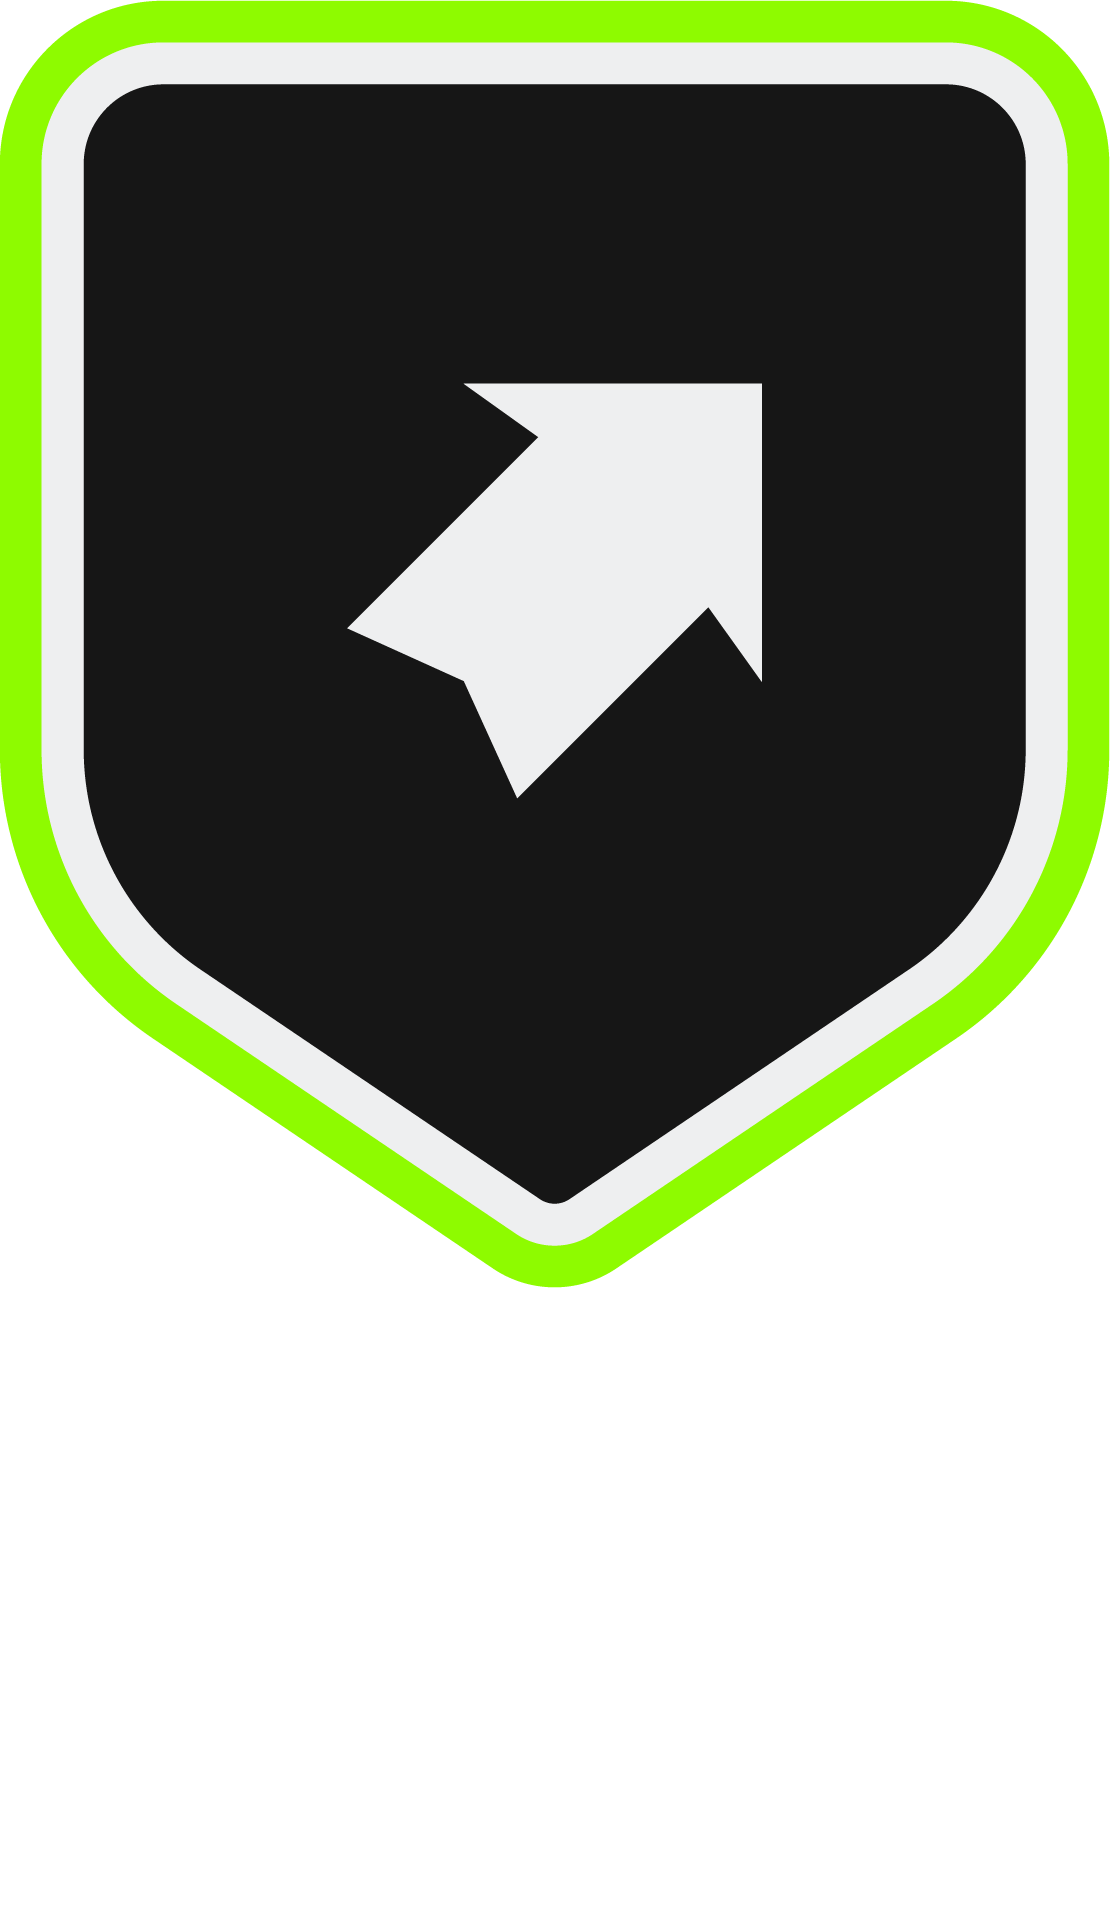 Rise Up - Week 4